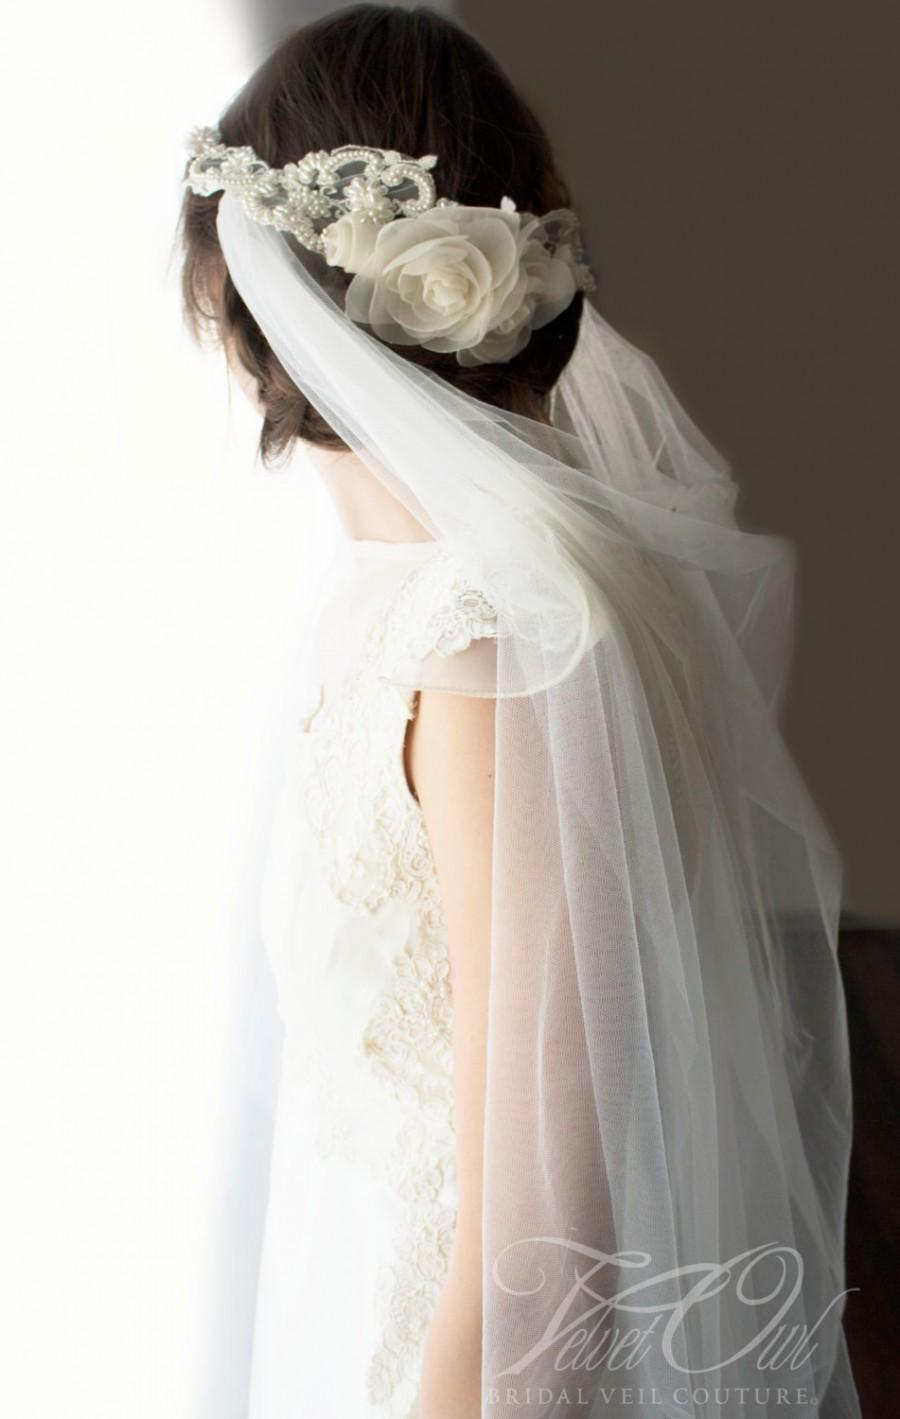 Mariage - Bridal draped veil Ivory tulle antique lace hand sewn pearls silk flowers headpiece - EVIANNA